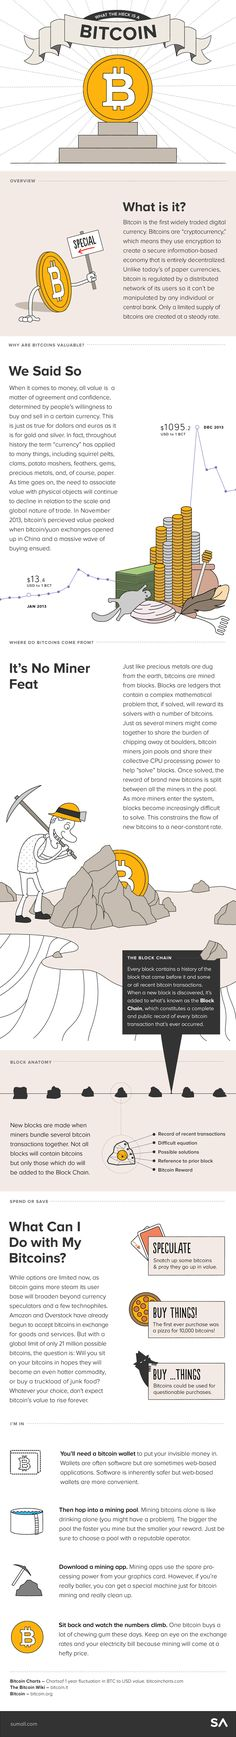 What the Heck Is a Bitcoin? #infographic #money #business